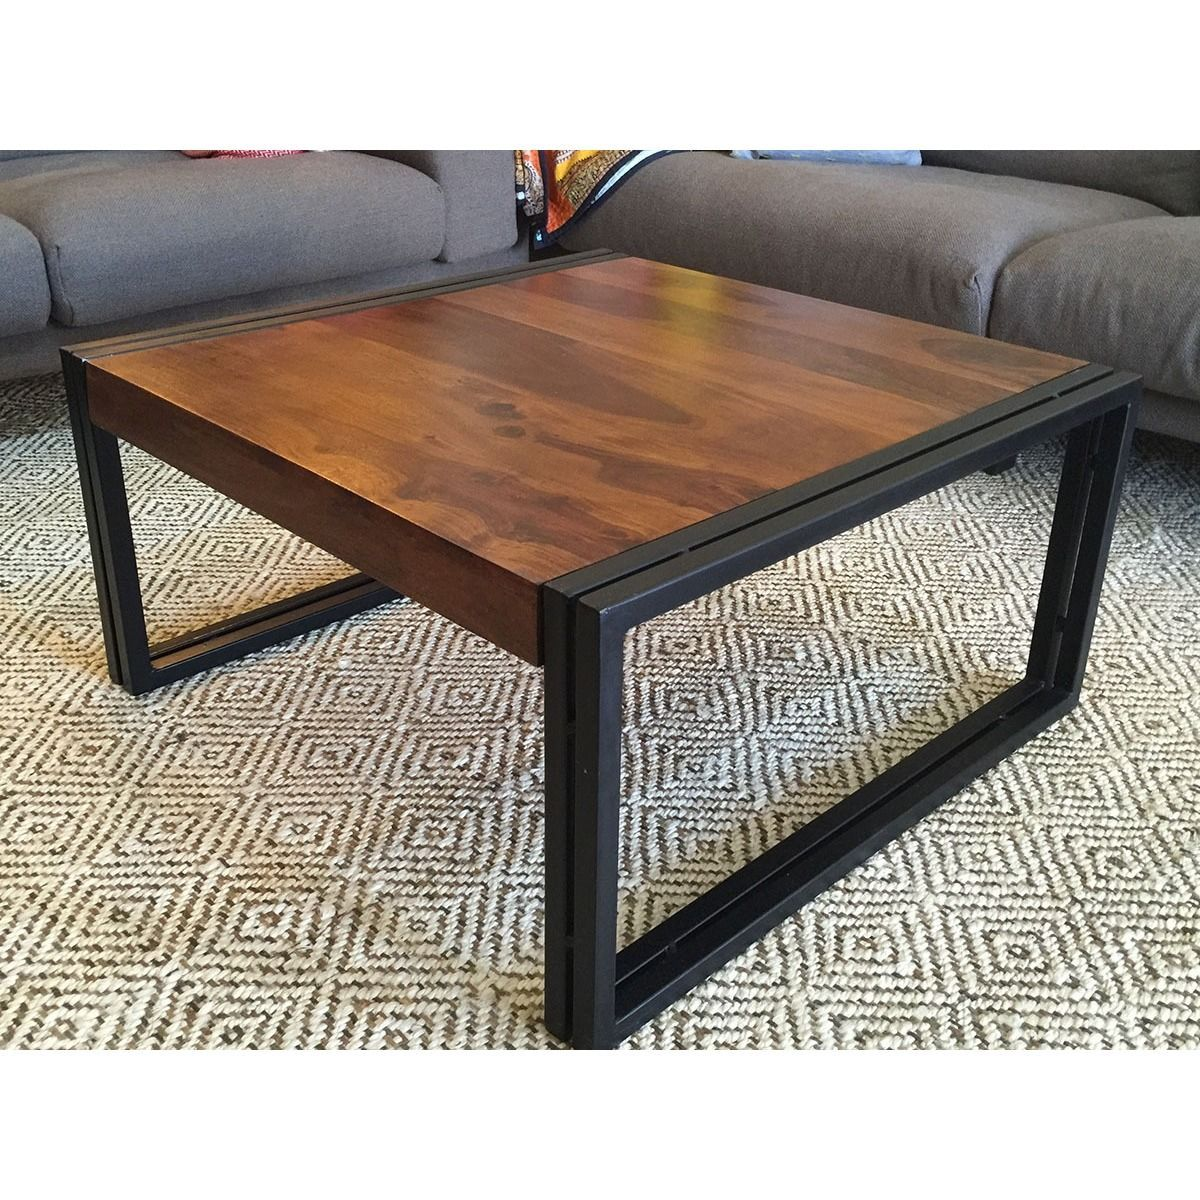 Timbergirl Reclaimed Solid Seesham Wood Coffee Table (India)   Overstock™  Shopping   Top Rated Coffee, Sofa U0026 End Tables